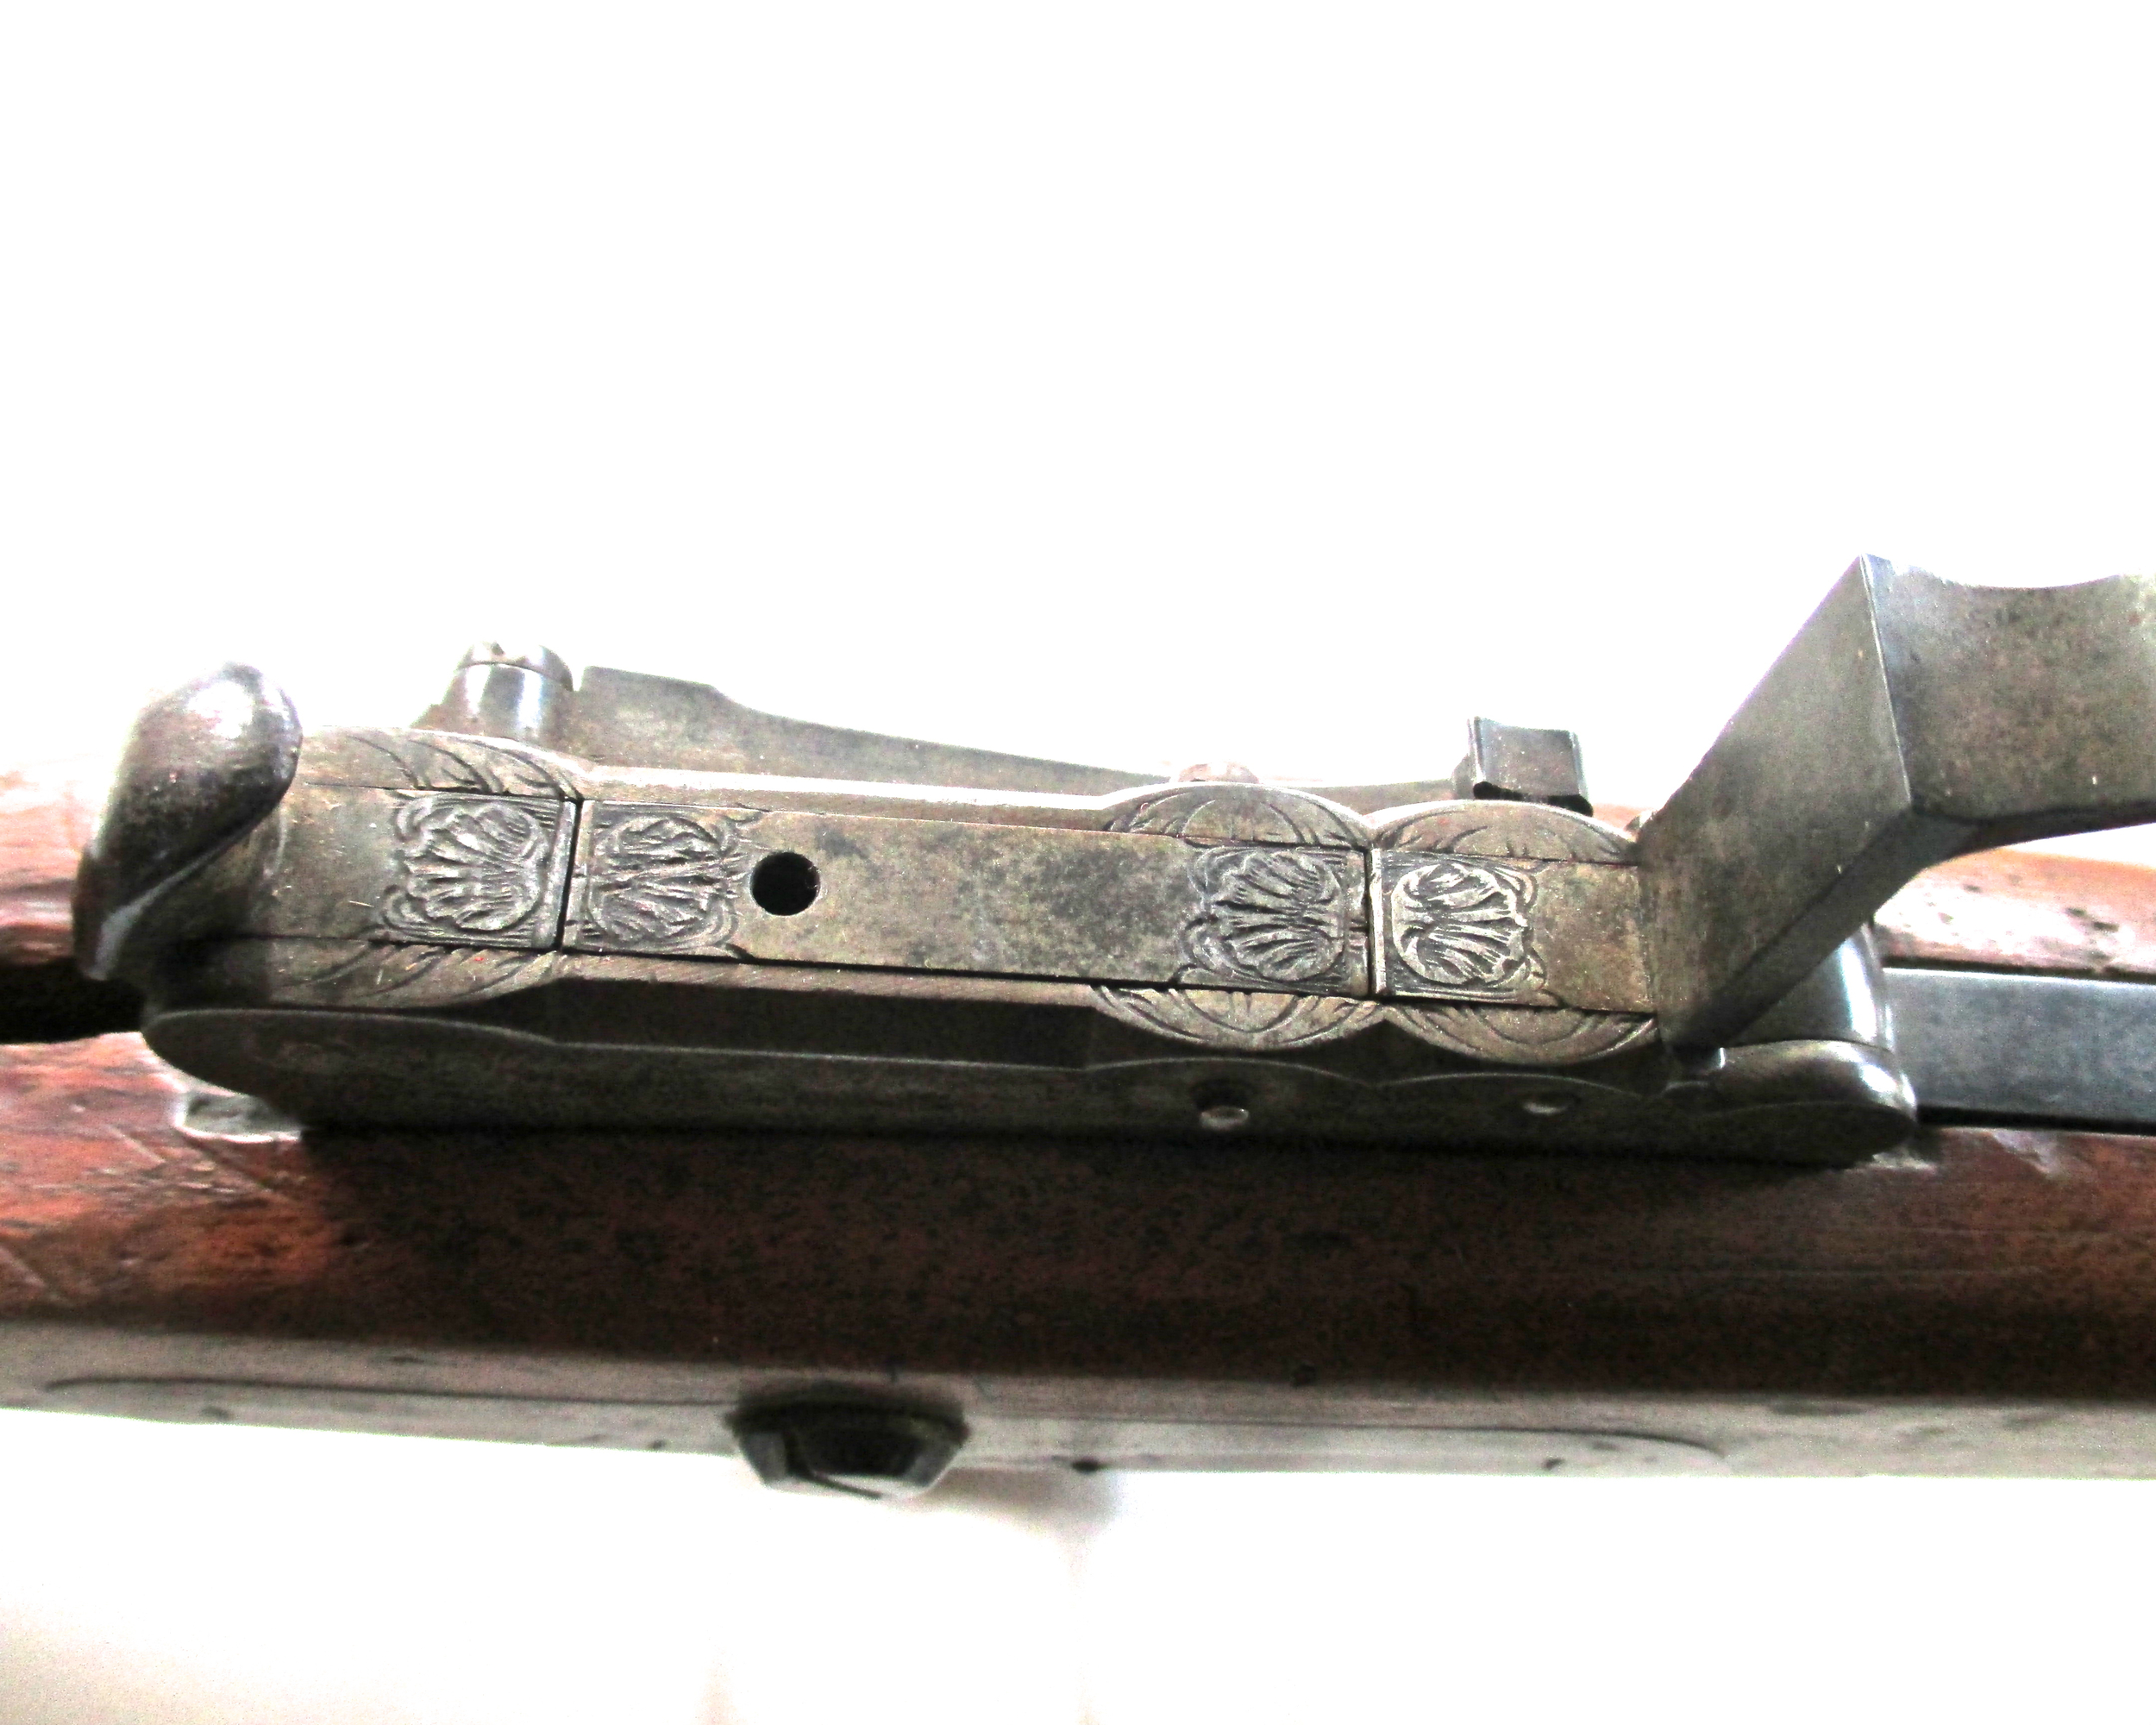 english-stonebow-crossbow-pellet-weapon-barker-gary-friedland-antique-arms-armor10.jpg